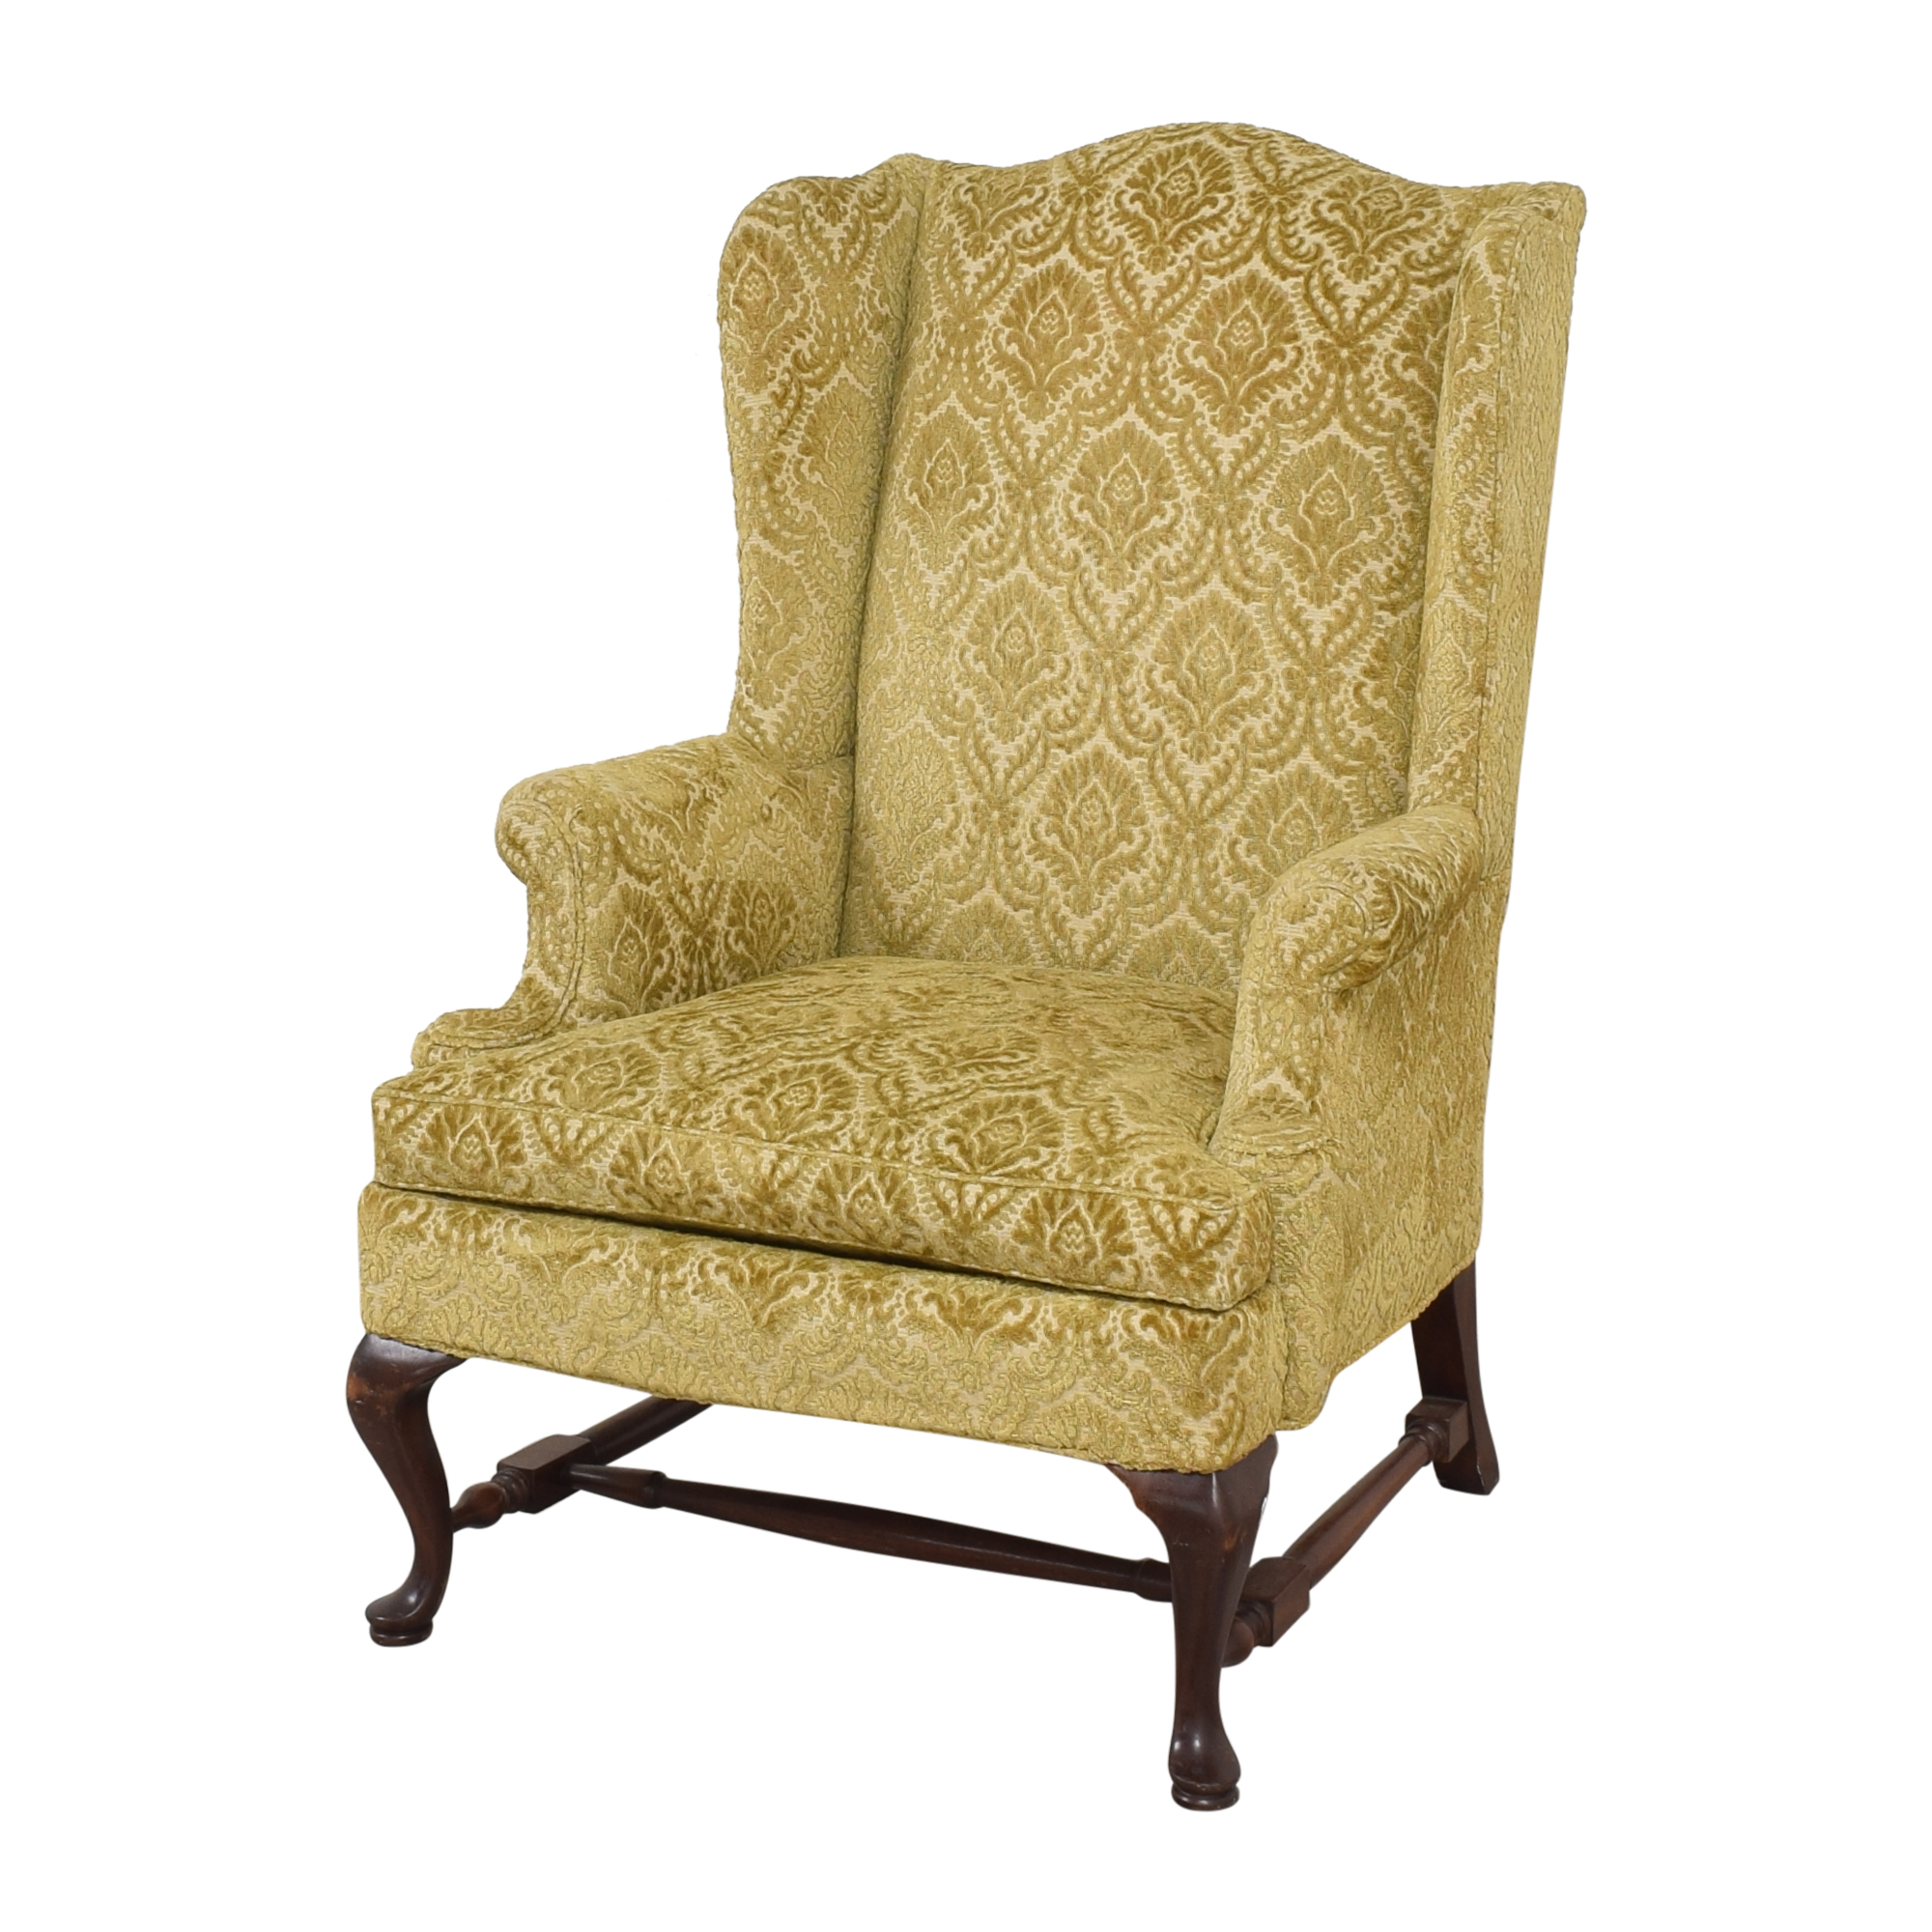 Hickory Chair Hickory Chair Queen Anne Wing Back Chair nj